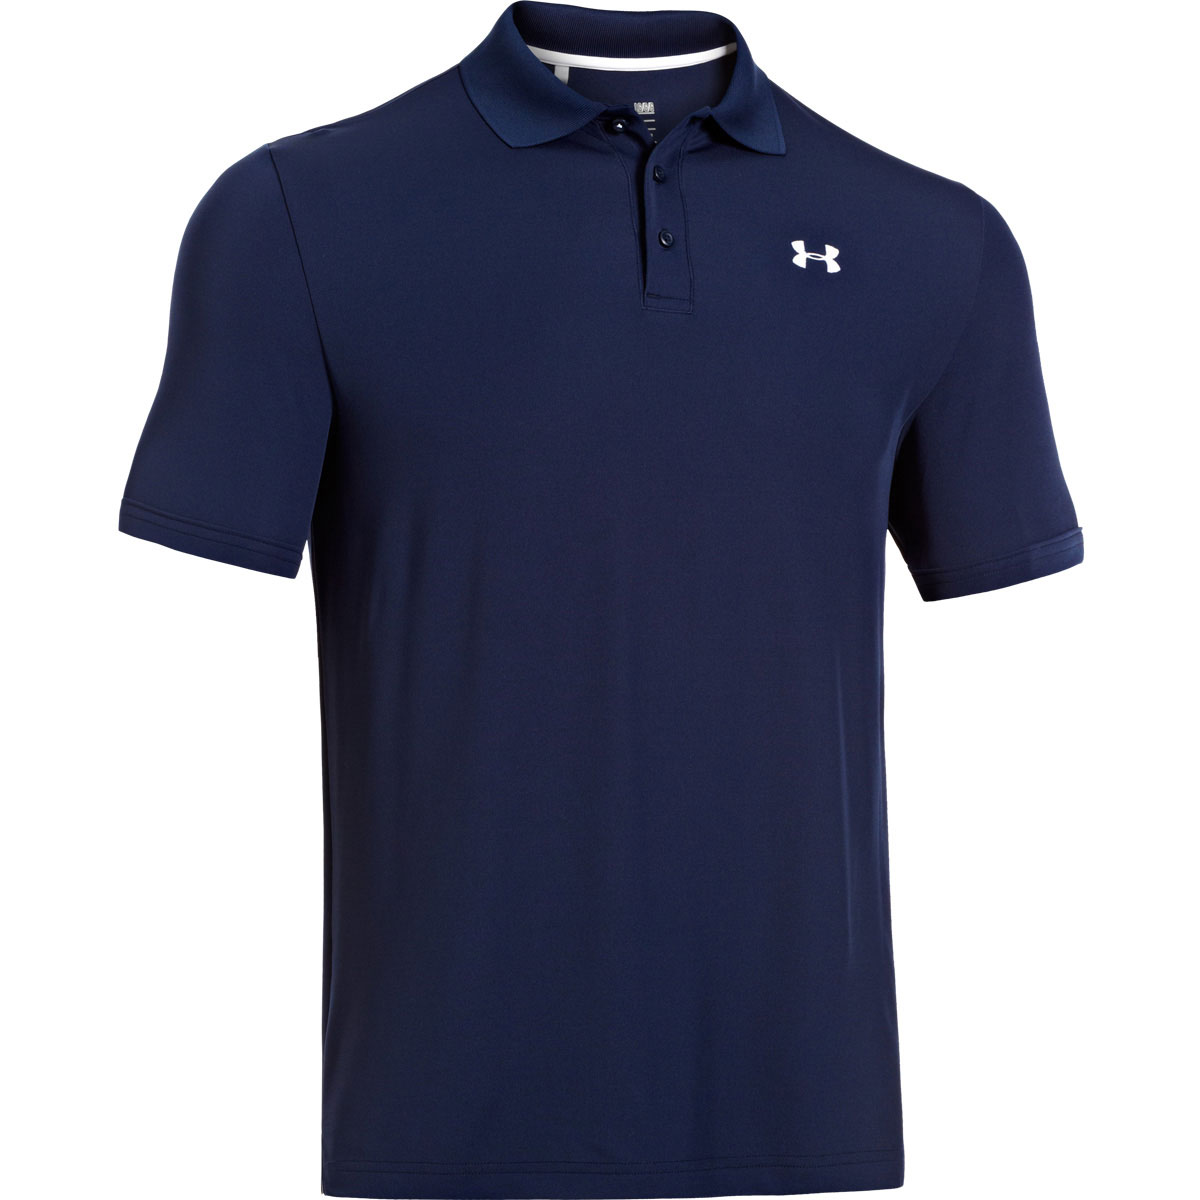 under armour 2017 mens ua performance tech short sleeve golf polo shirt ebay. Black Bedroom Furniture Sets. Home Design Ideas